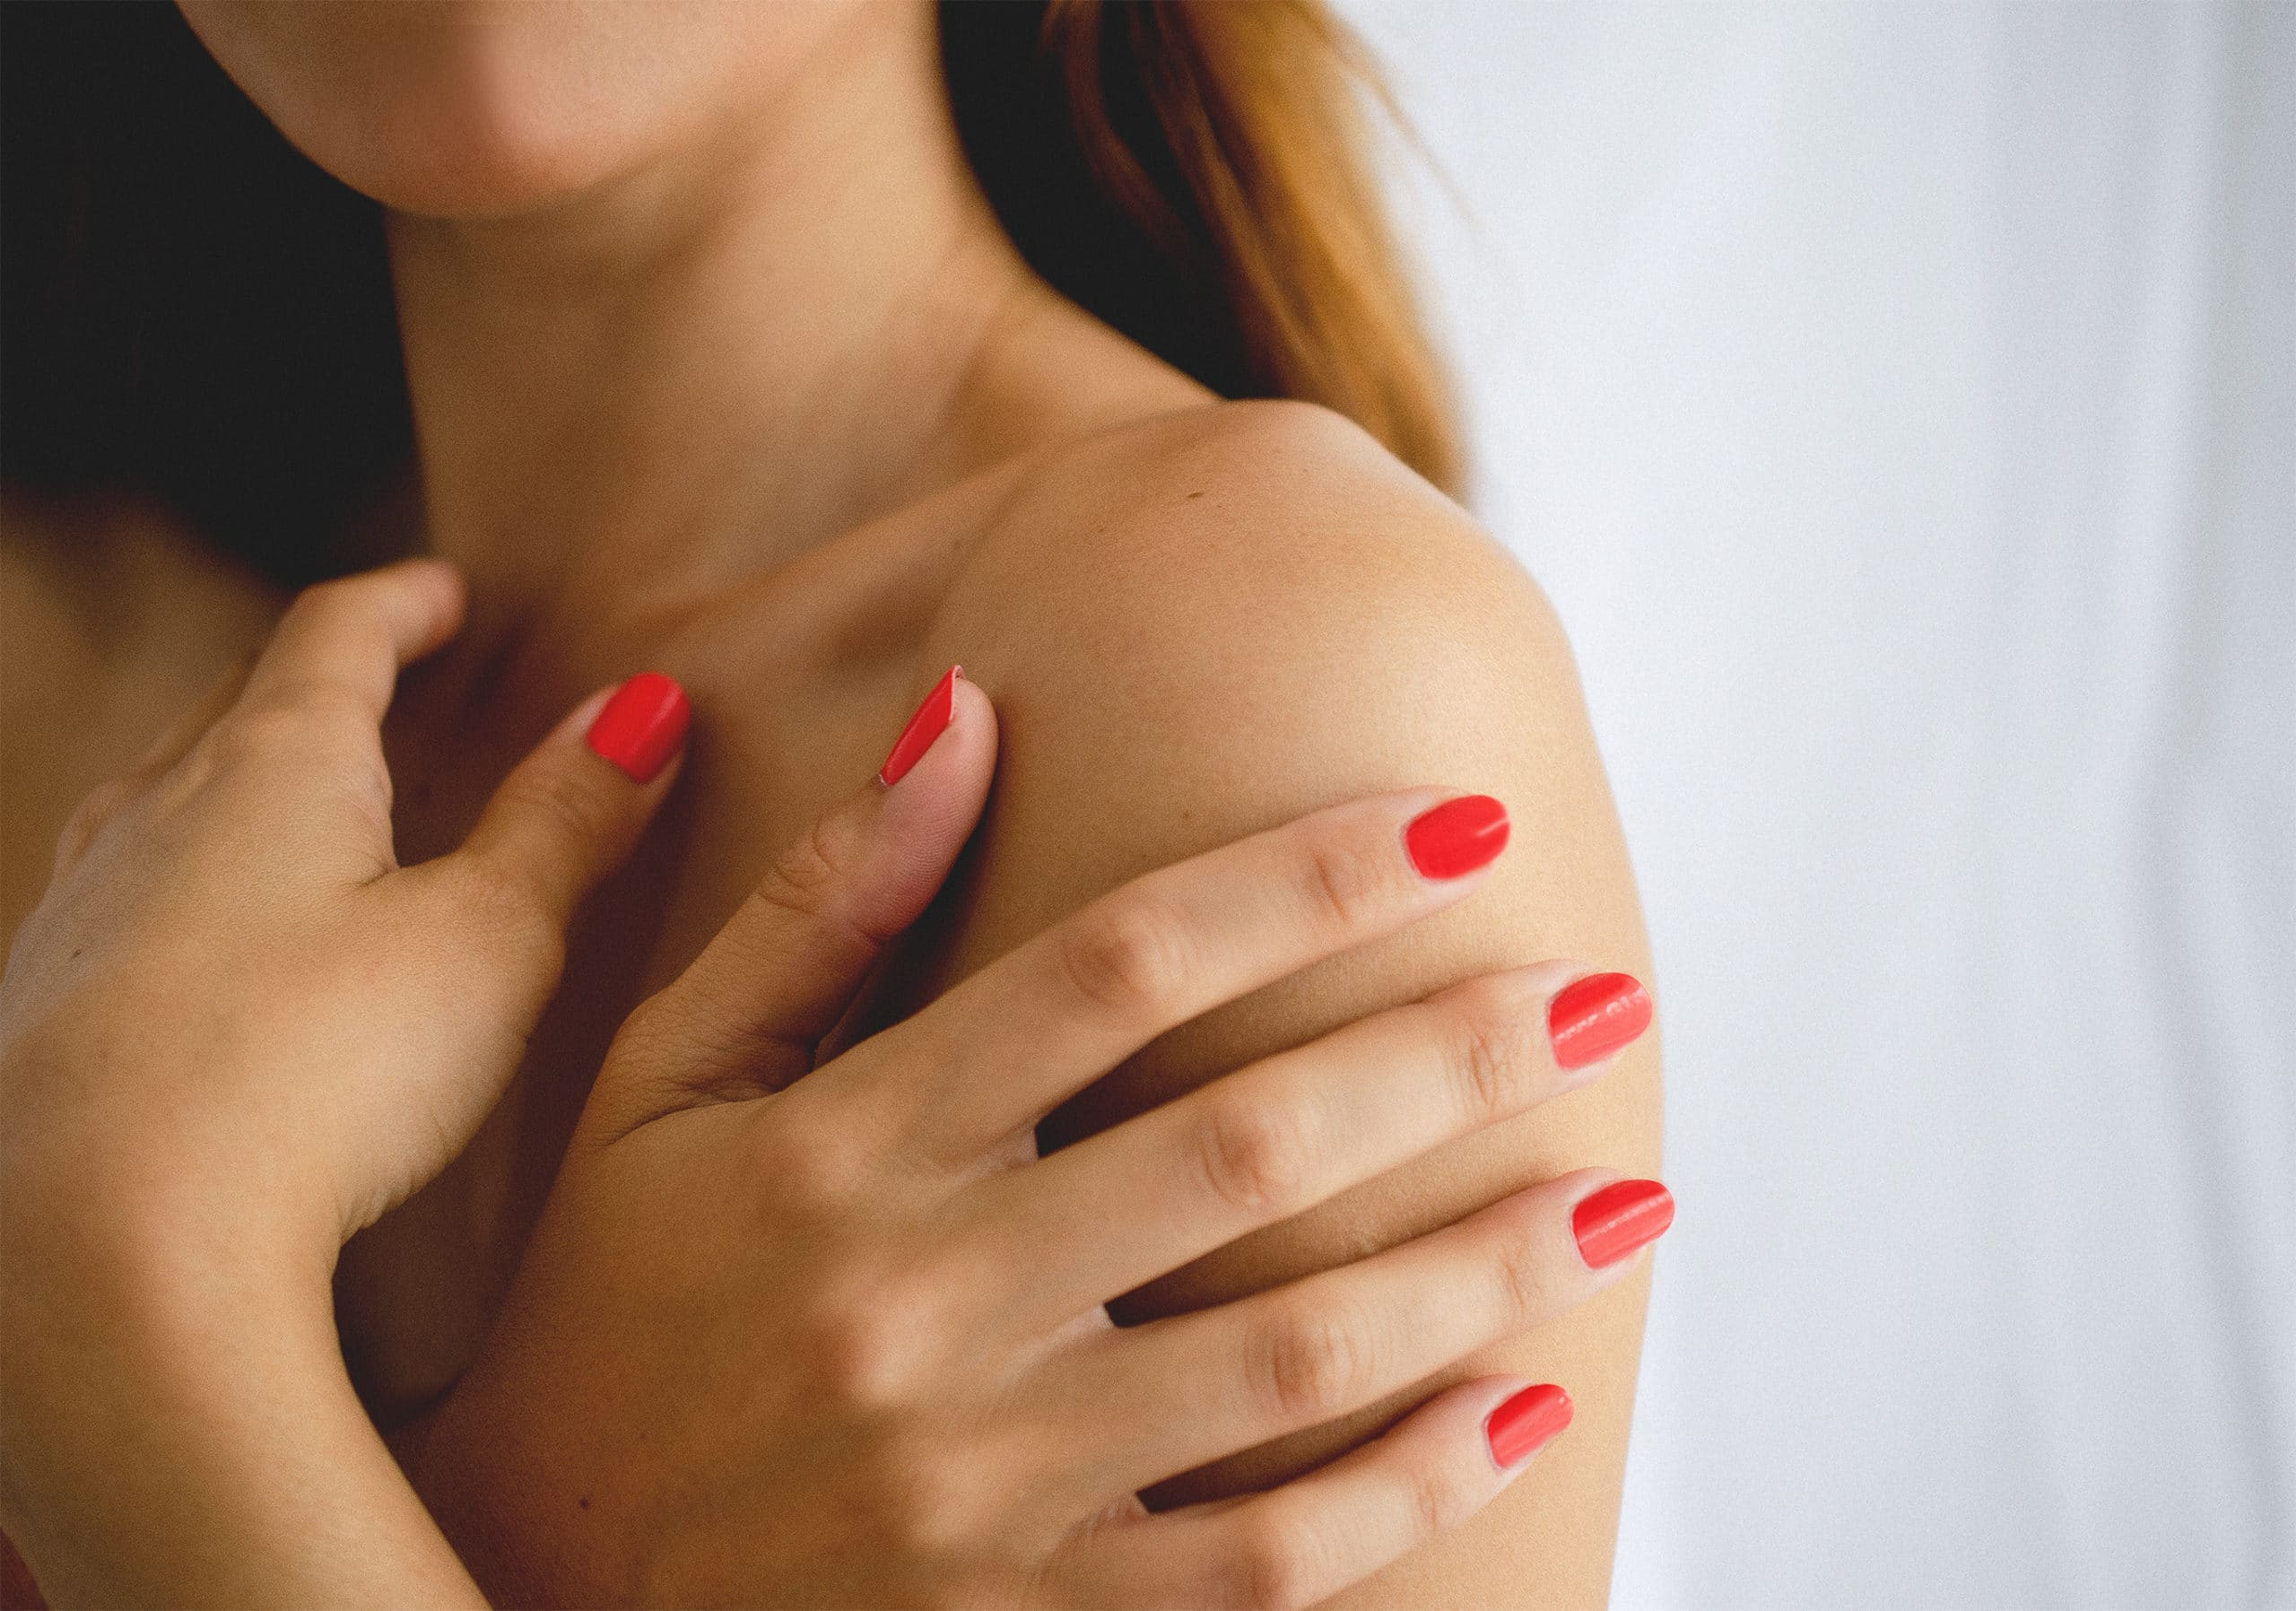 young woman holding her hands to her shoulder wearing red nail polish by sienna